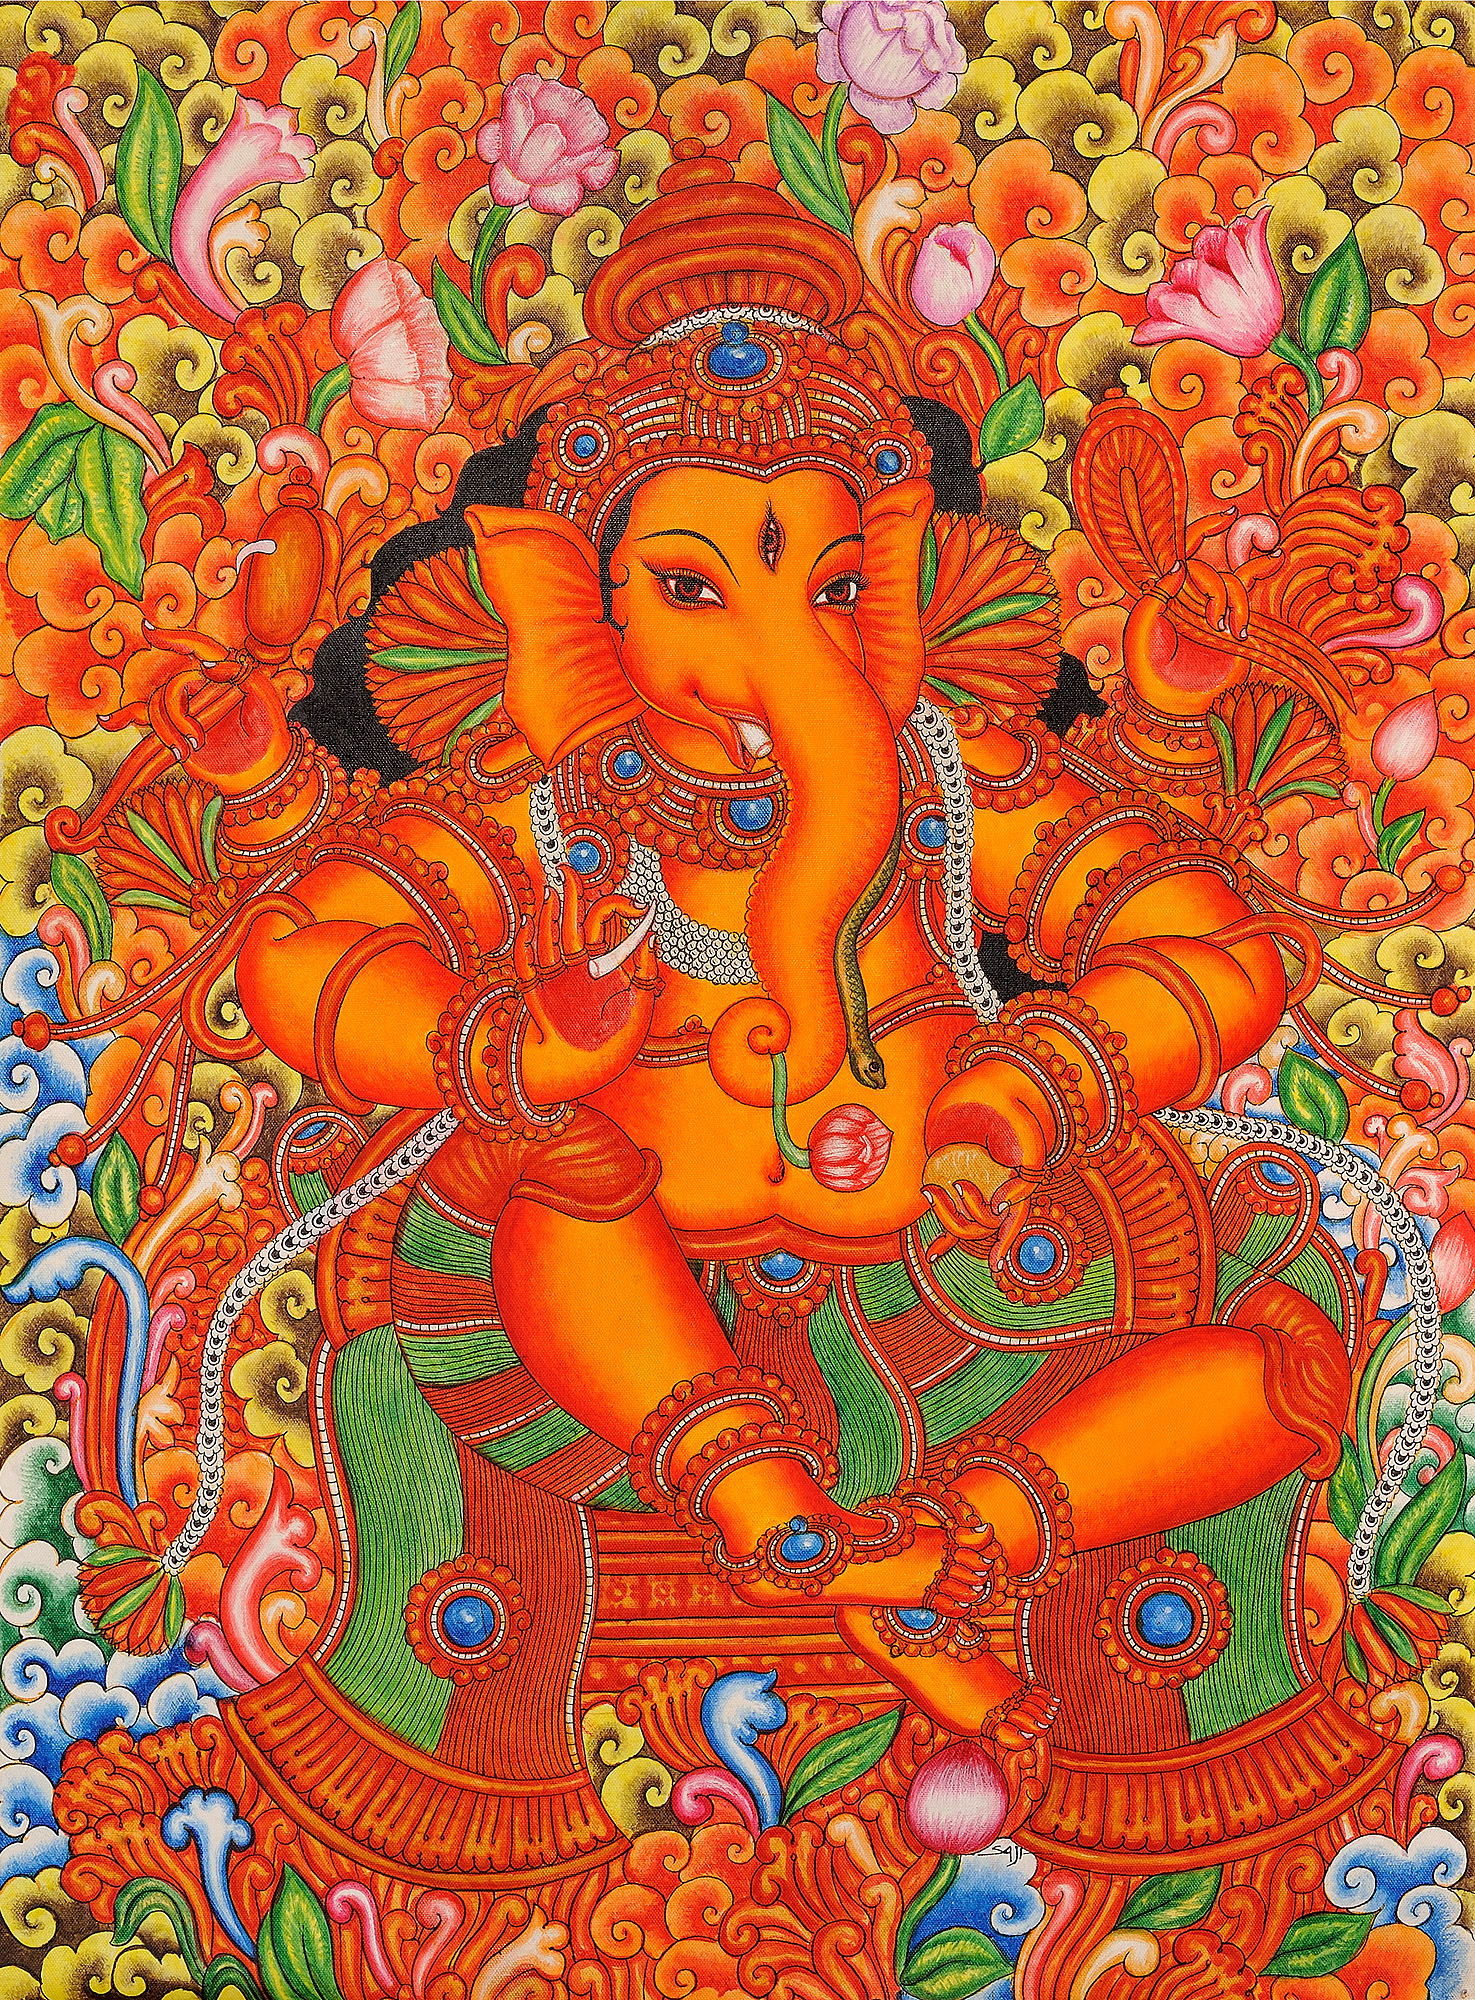 lord ganesha in the style of mattanchery palace murals On mural art of ganesha